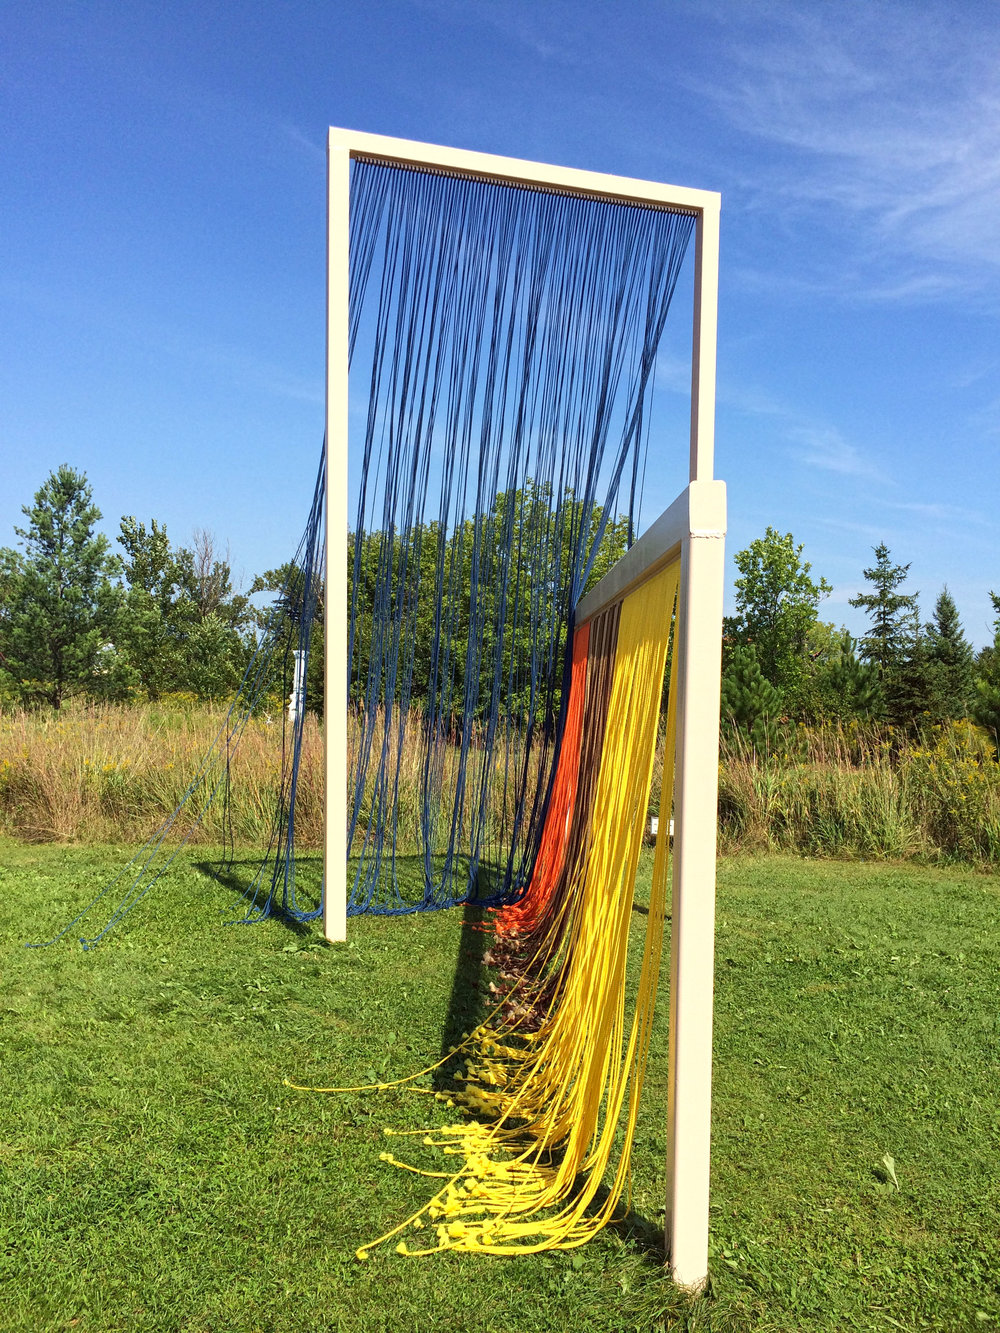 Little Women, 2016, 6mm Polypropylene cord, wood and painted metal, Franconia Sculpture Park, MN, 17 x 9 x 20 feet